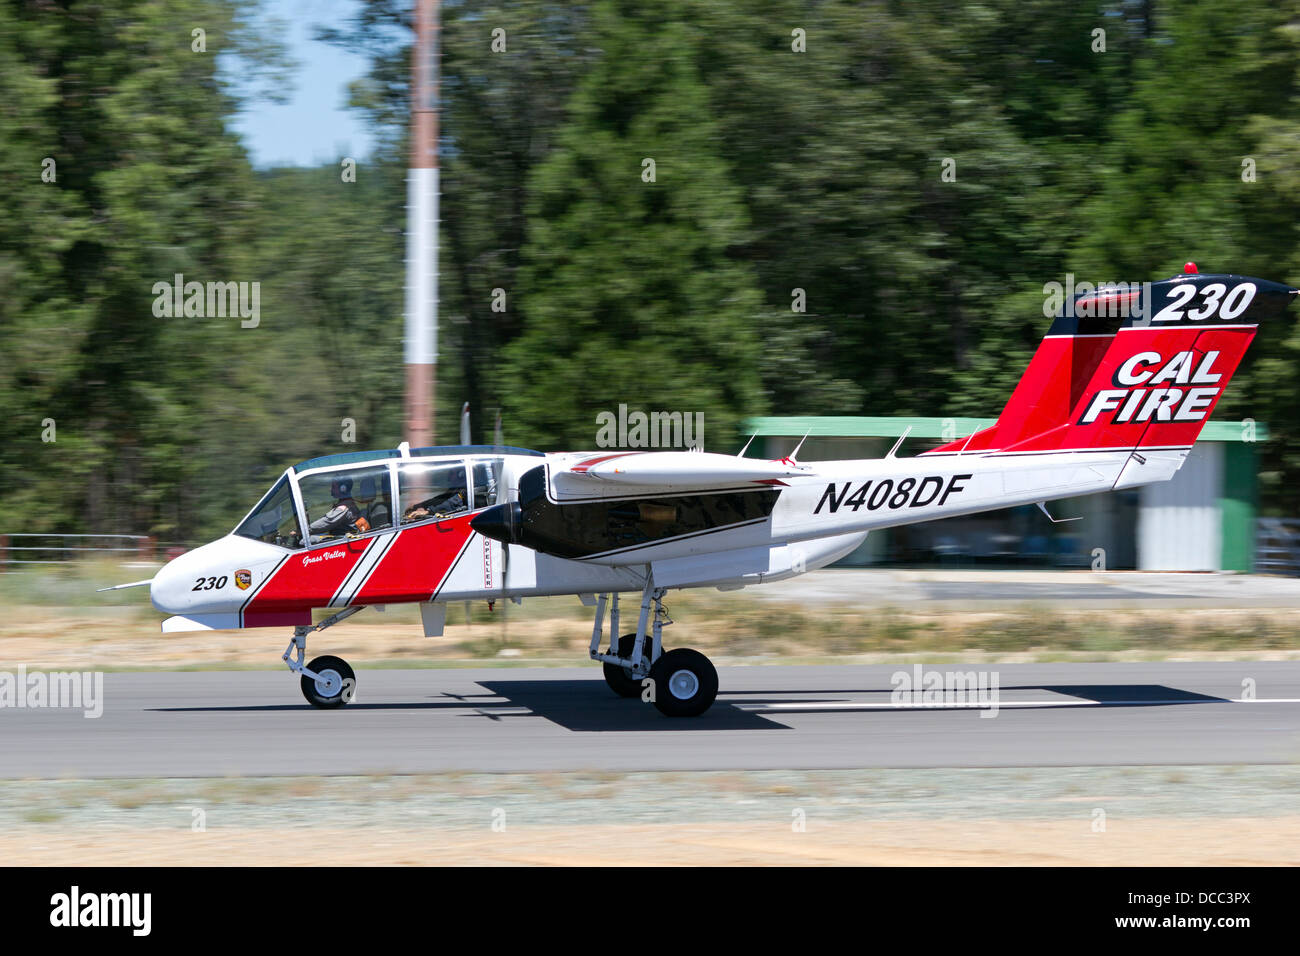 Cal Fire OV-10 Bronco on take off roll at the Nevada County Air Attack Base at the start of a firefighting mission. - Stock Image